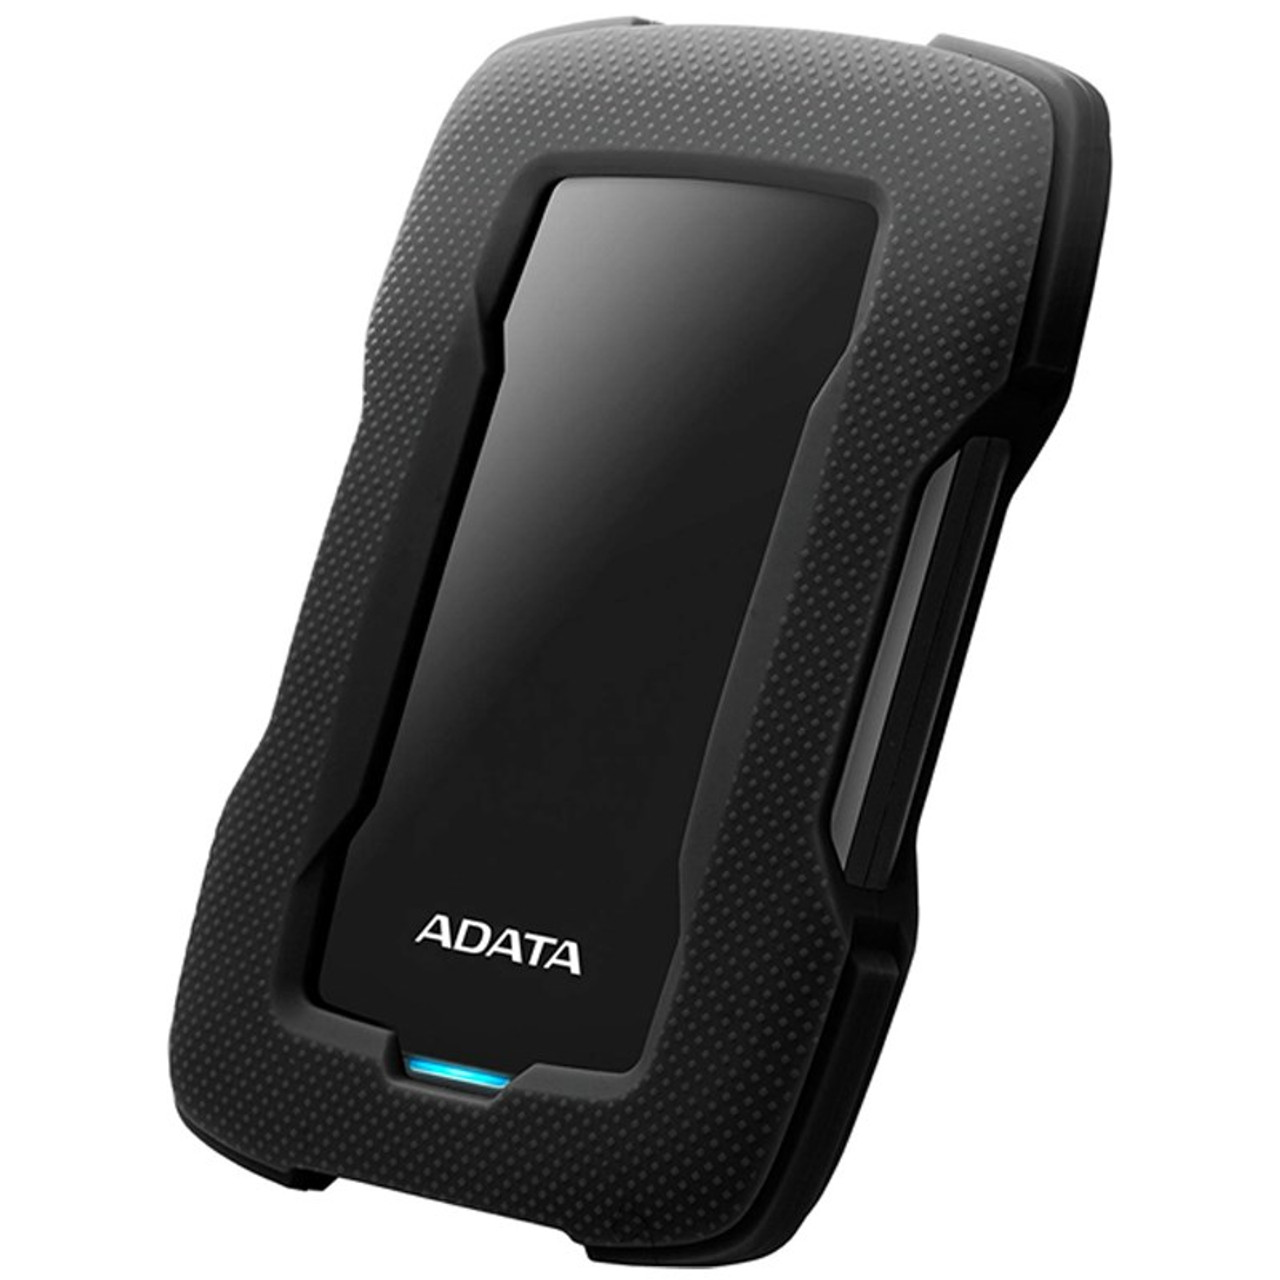 Image for Adata HD330 2TB USB 3.2 Portable External Hard Drive - Black CX Computer Superstore